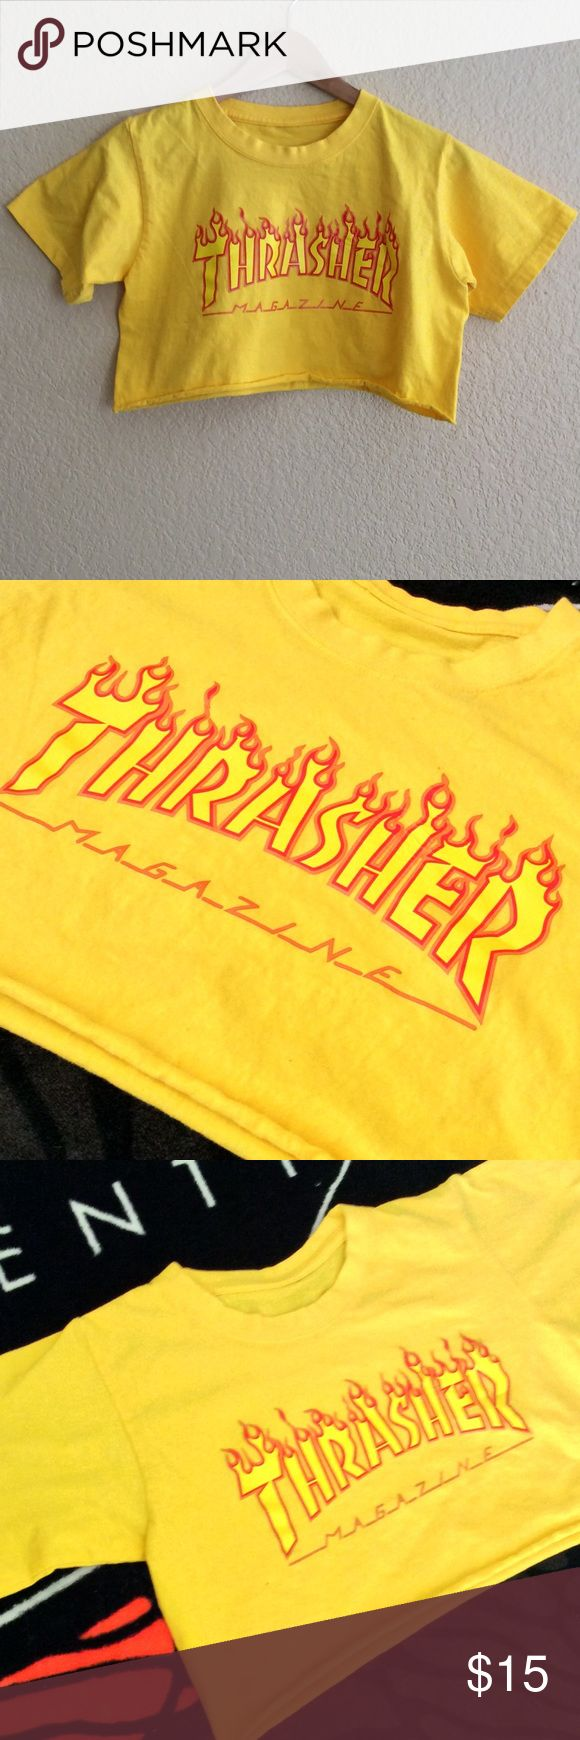 Thrasher flame crop top XS Gold cropped skate T shirt. Best fit XS. Not Thrasher Magazine. thrasher Tops Crop Tops